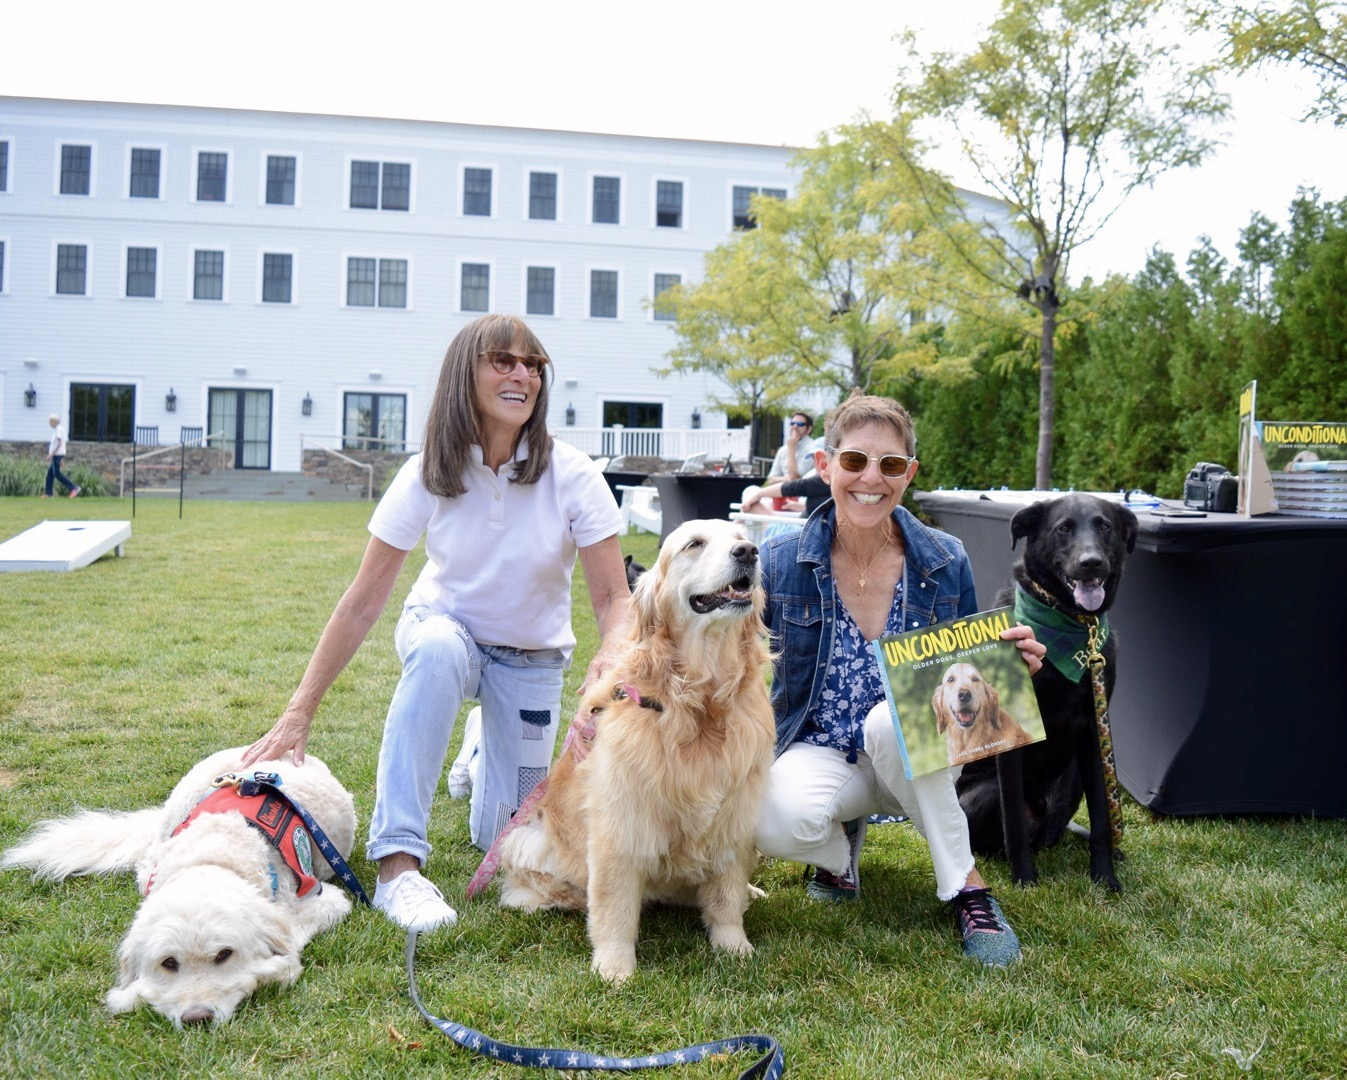 Bear with Jane Sobel Klonsky, her pup Charlie, and the cover pup!